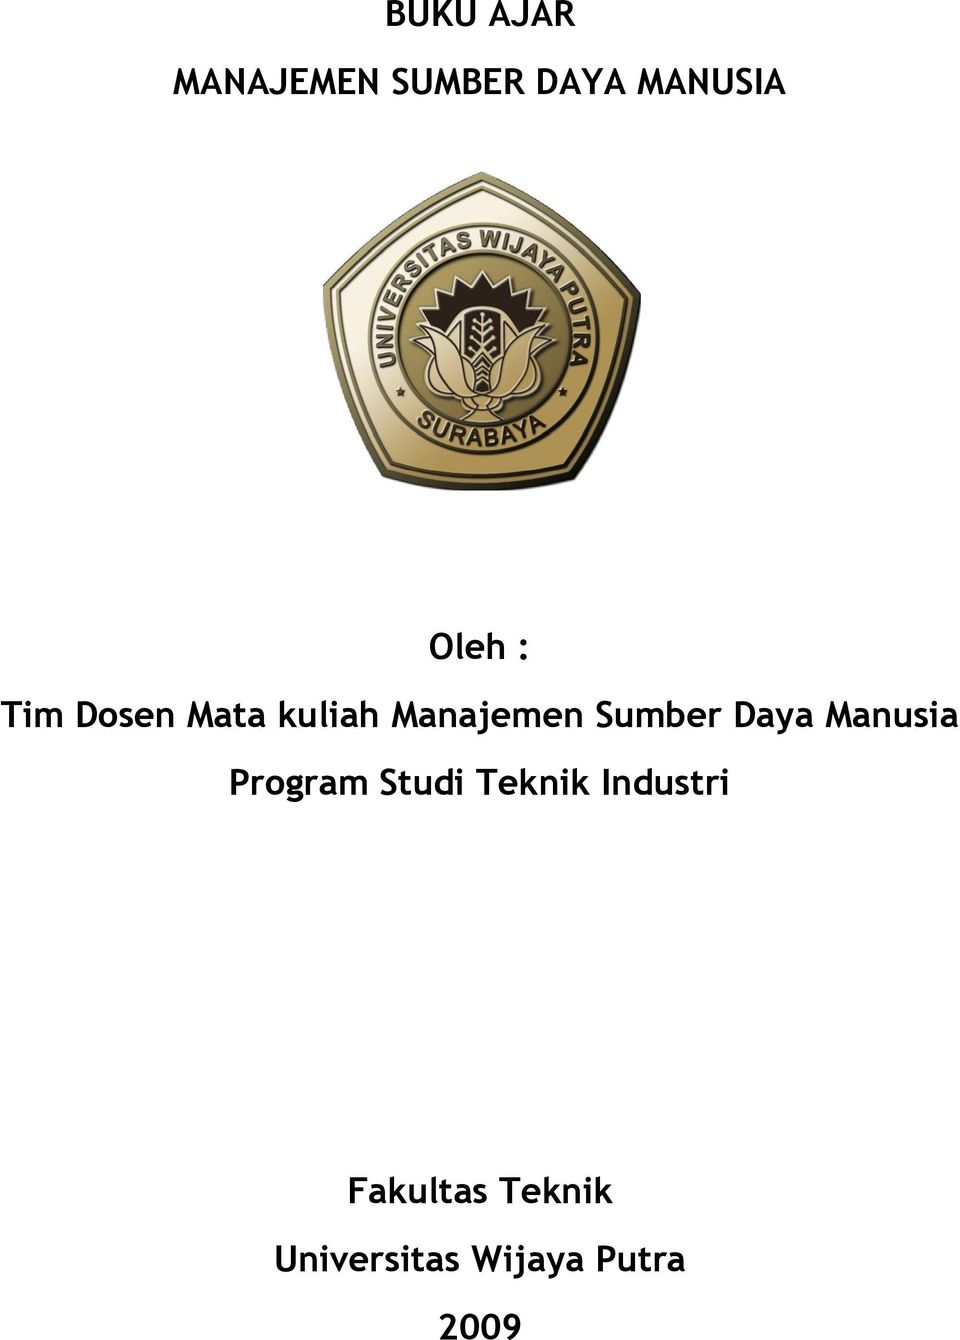 Sumber Daya Manusia Program Studi Teknik